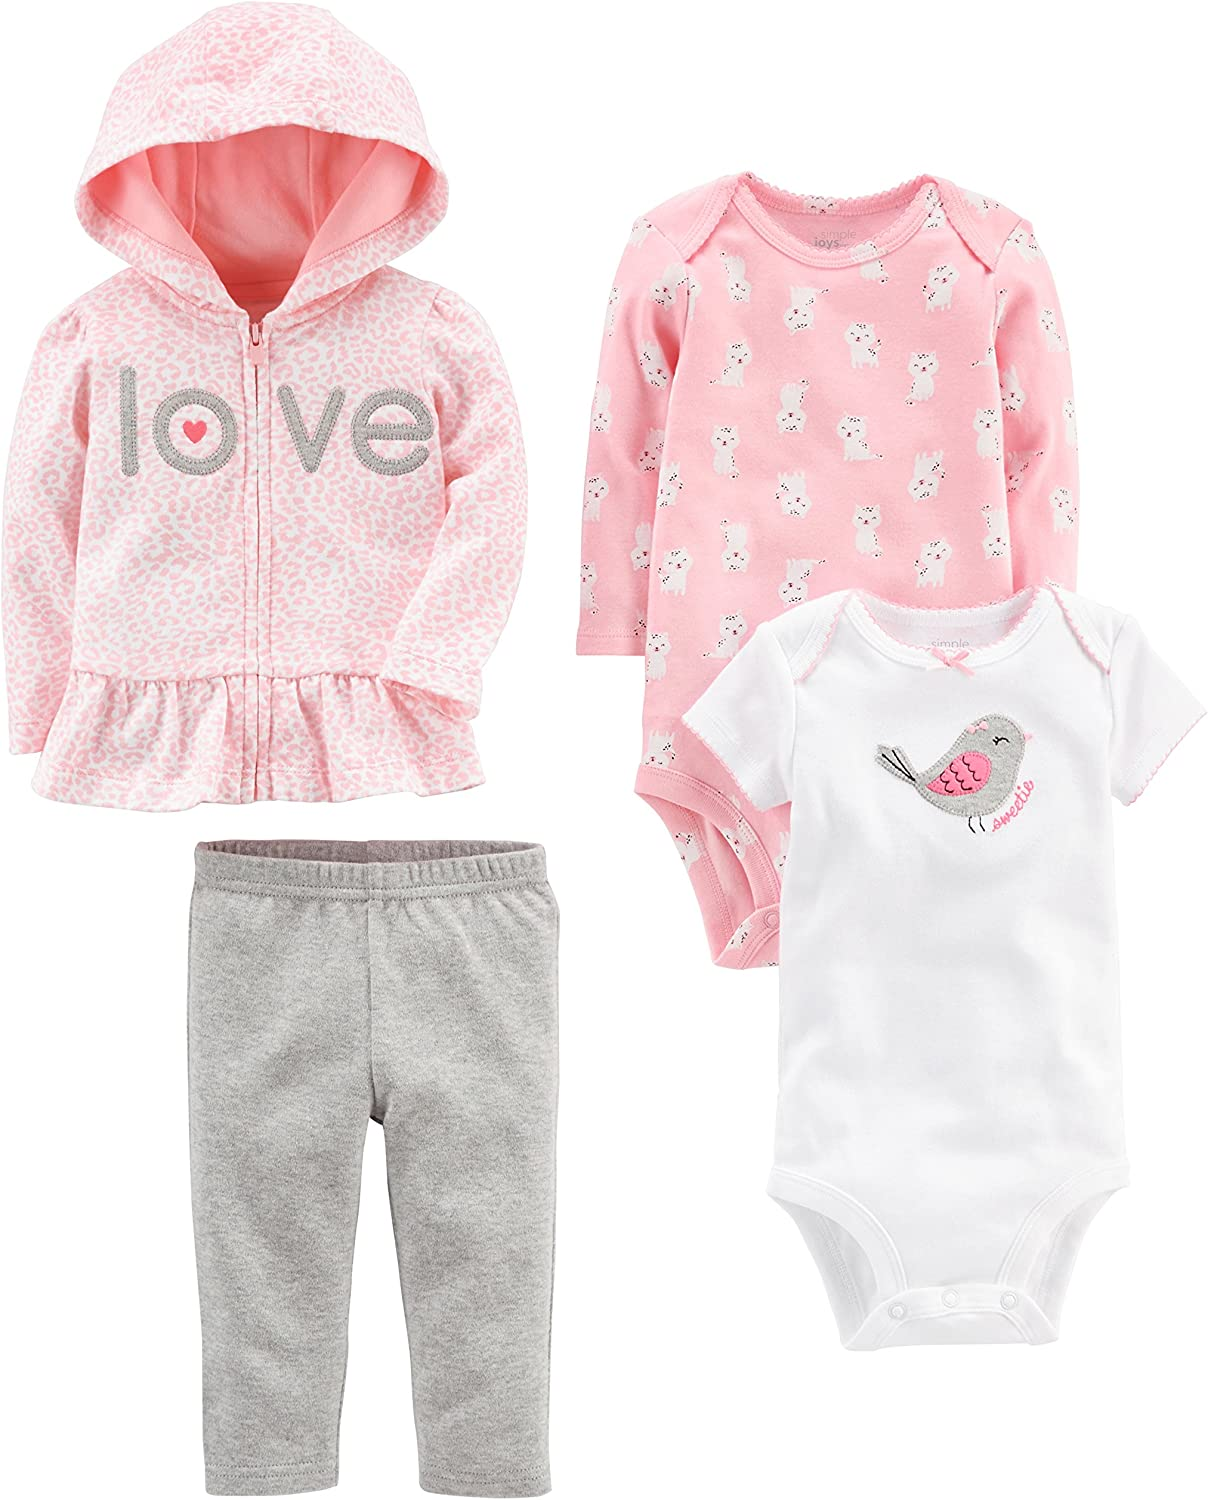 Simple Joys by Carters Baby Girls 4-Piece Jacket Pant and Bodysuit Set